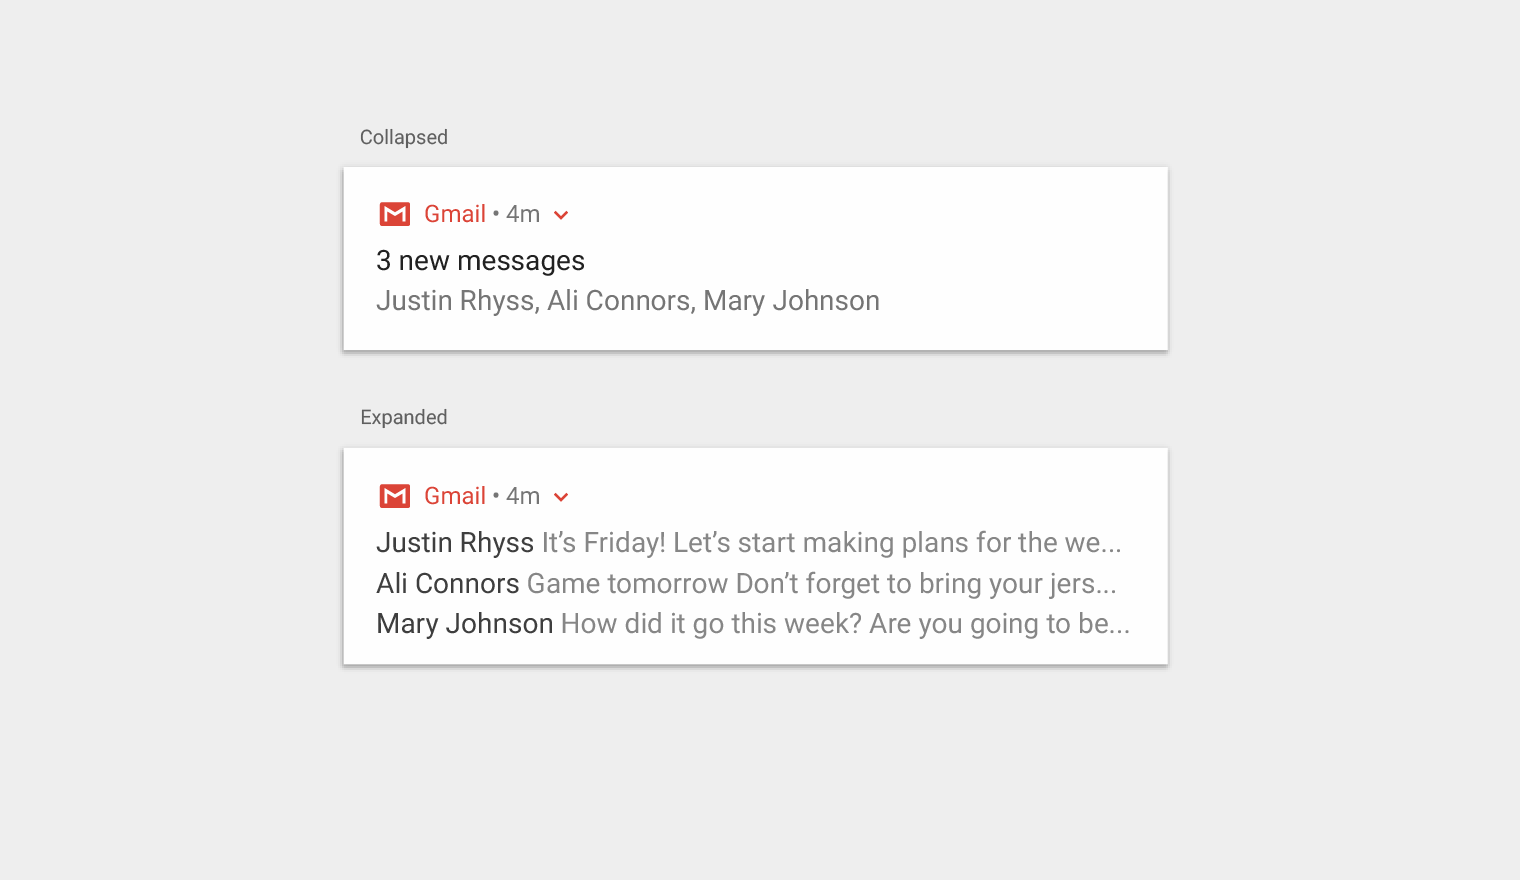 Notifications patterns material design multiple notifications summarized shown in both collapsed view and expanded view gamestrikefo Image collections